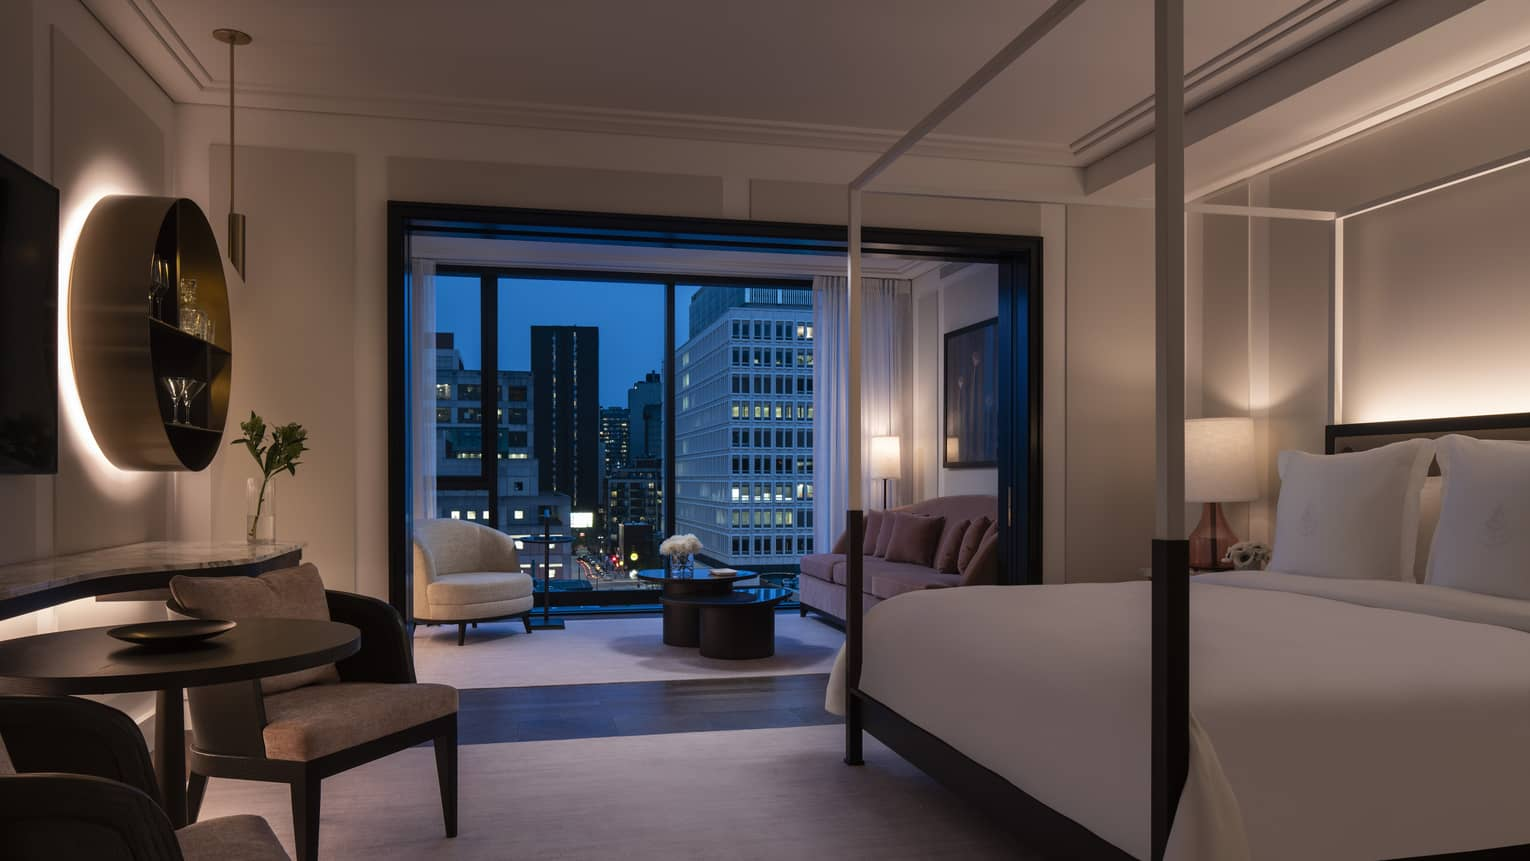 Four Seasons Executive Suite, dimly lit with four-poster modern bed and evening patio views